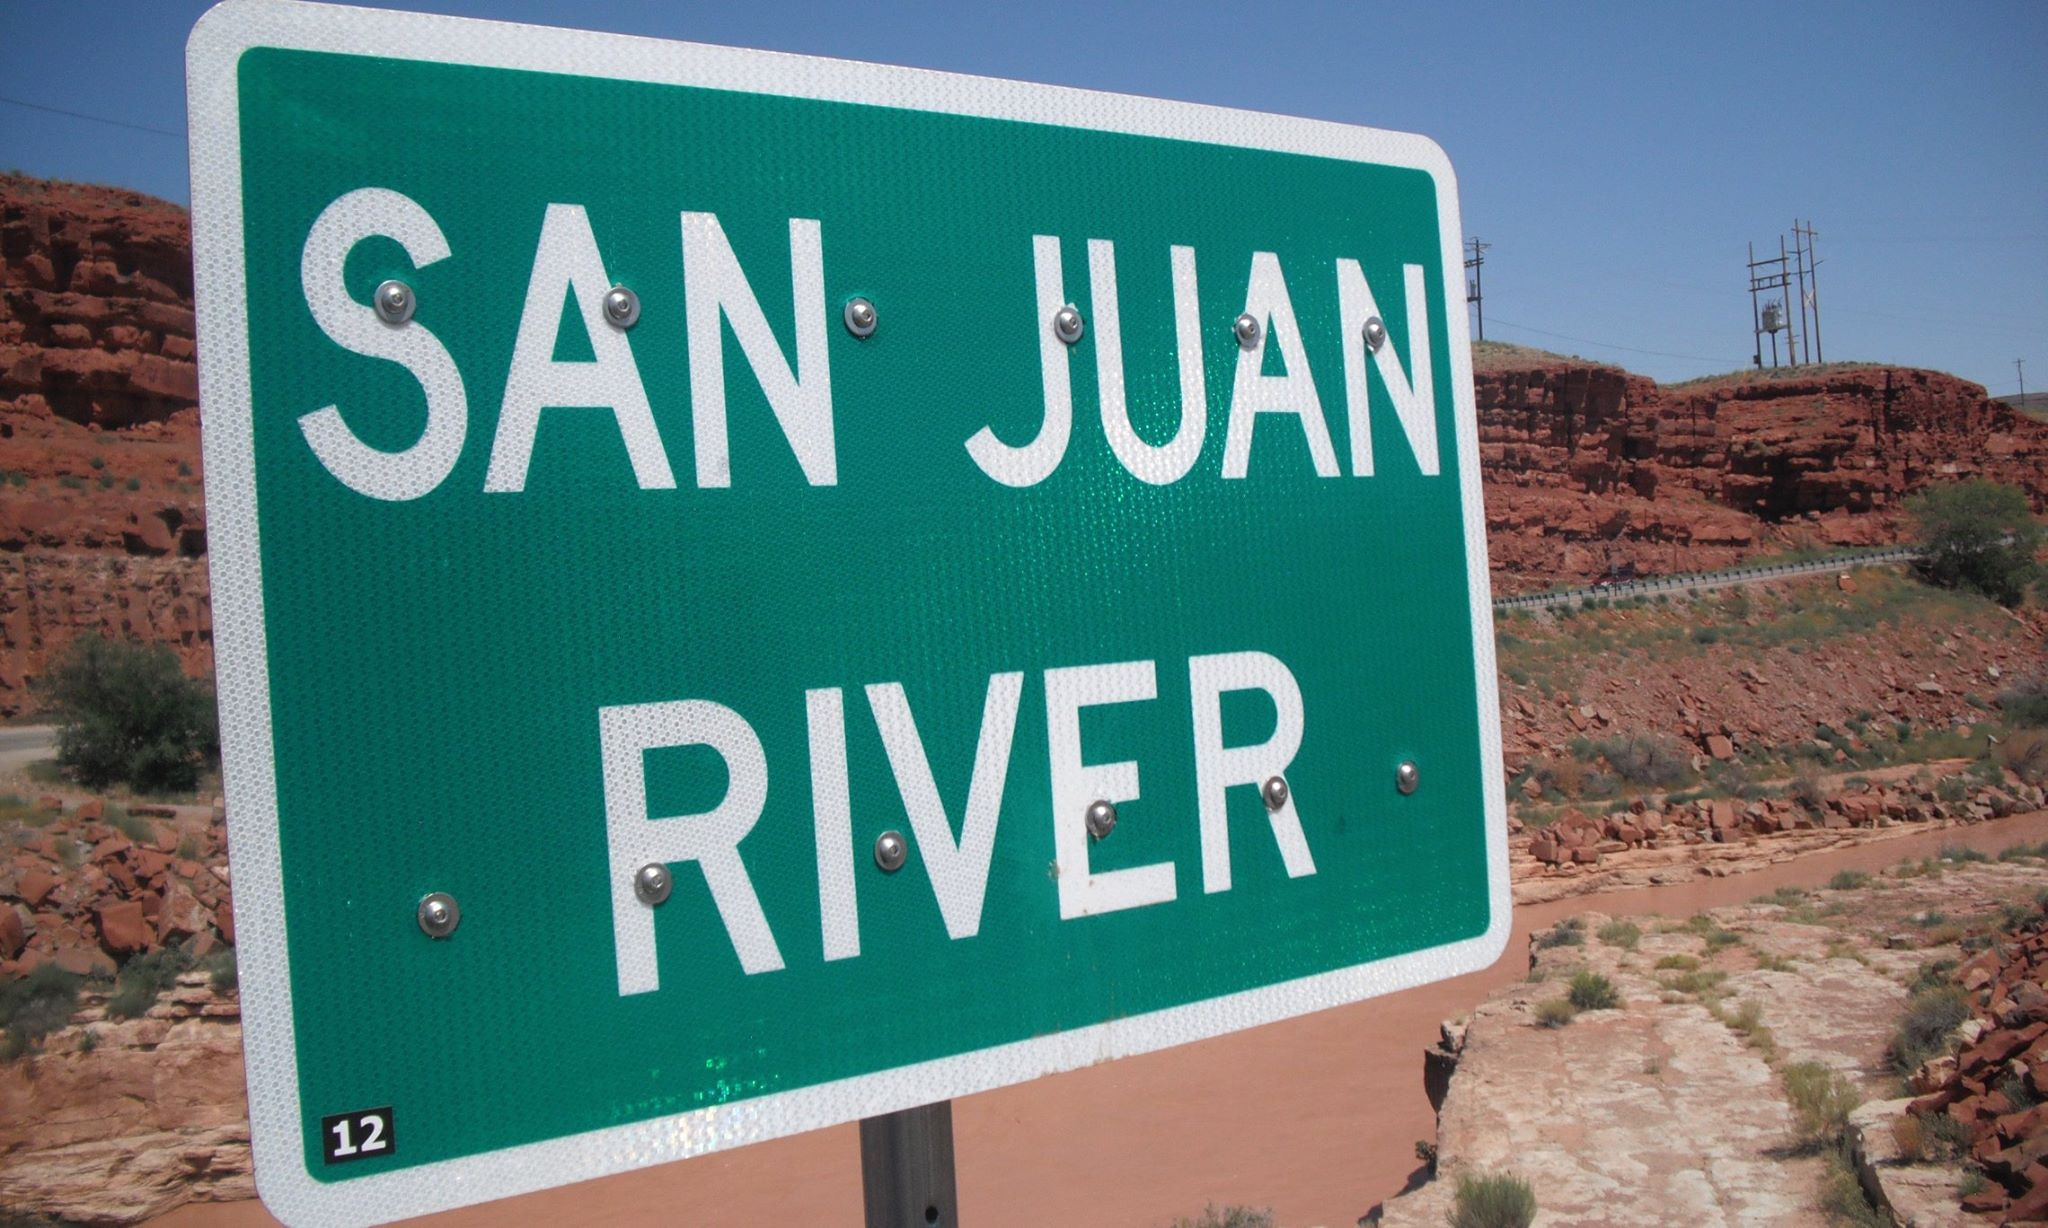 Navajo Nation to reopen irrigation canal after Gold King mine spill